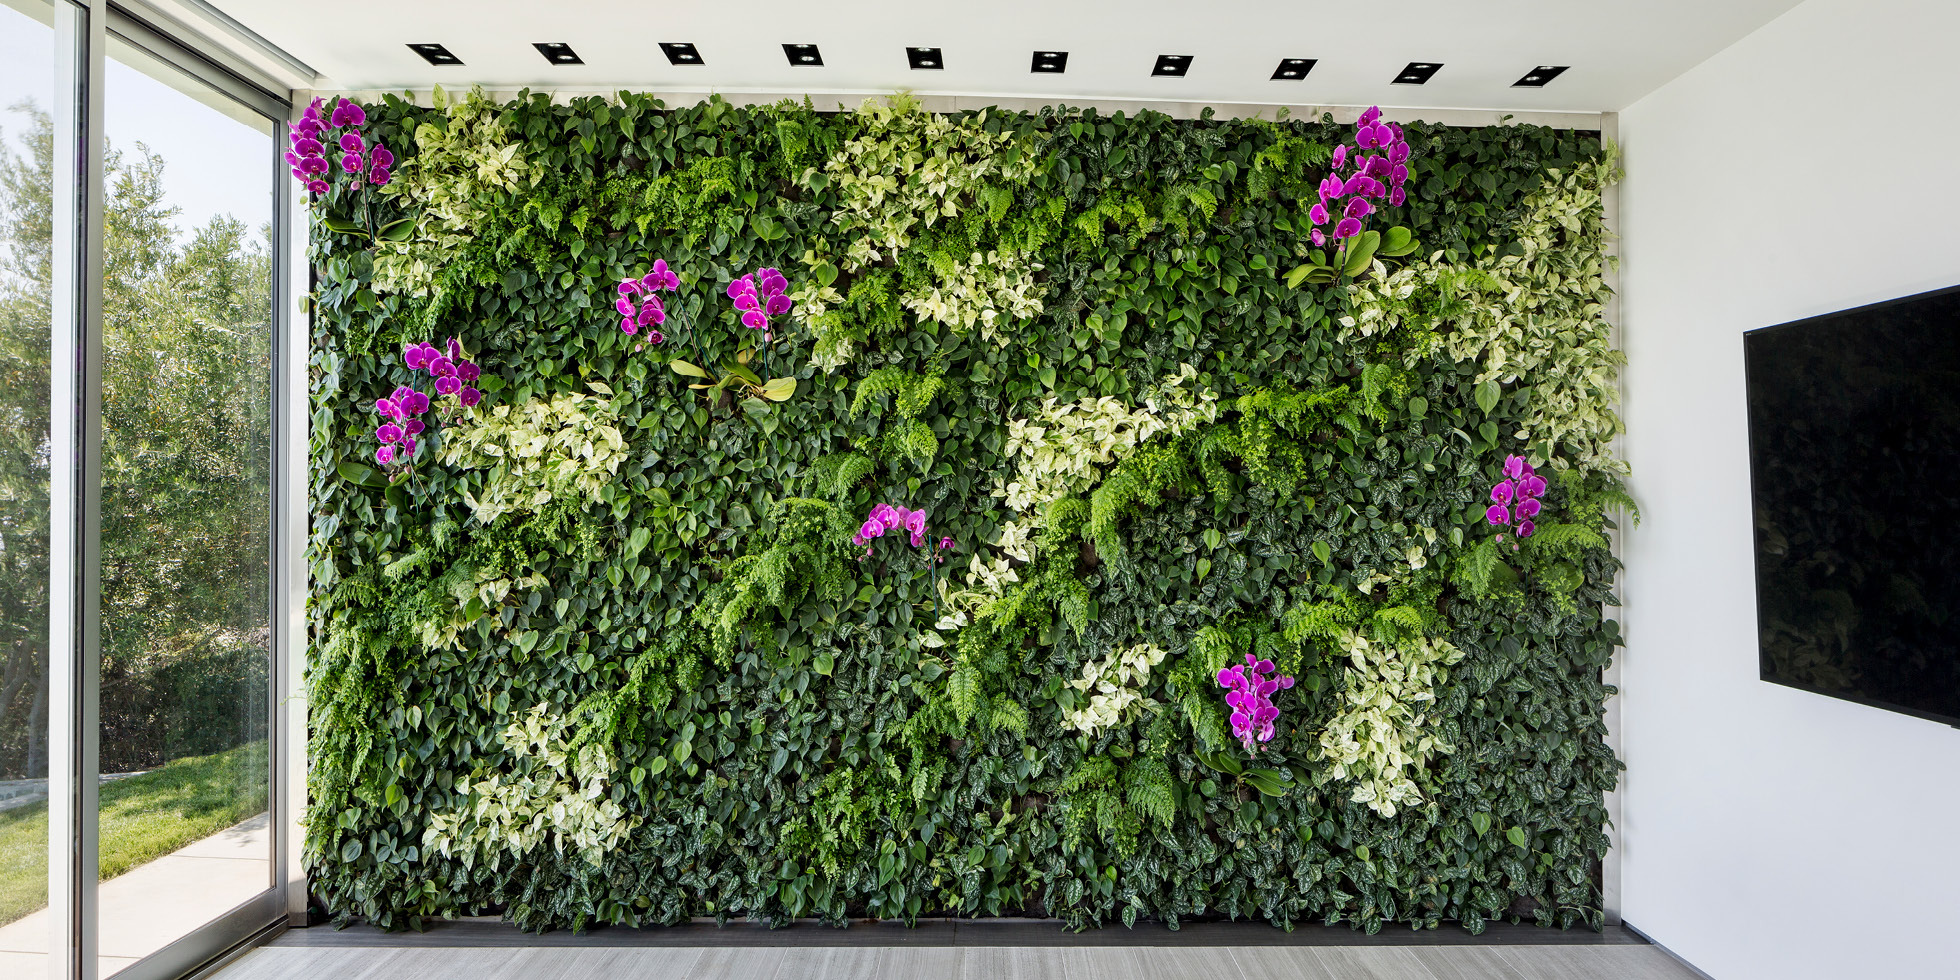 Skyline Residence Living Wall by Habitat Horticulture - View 3